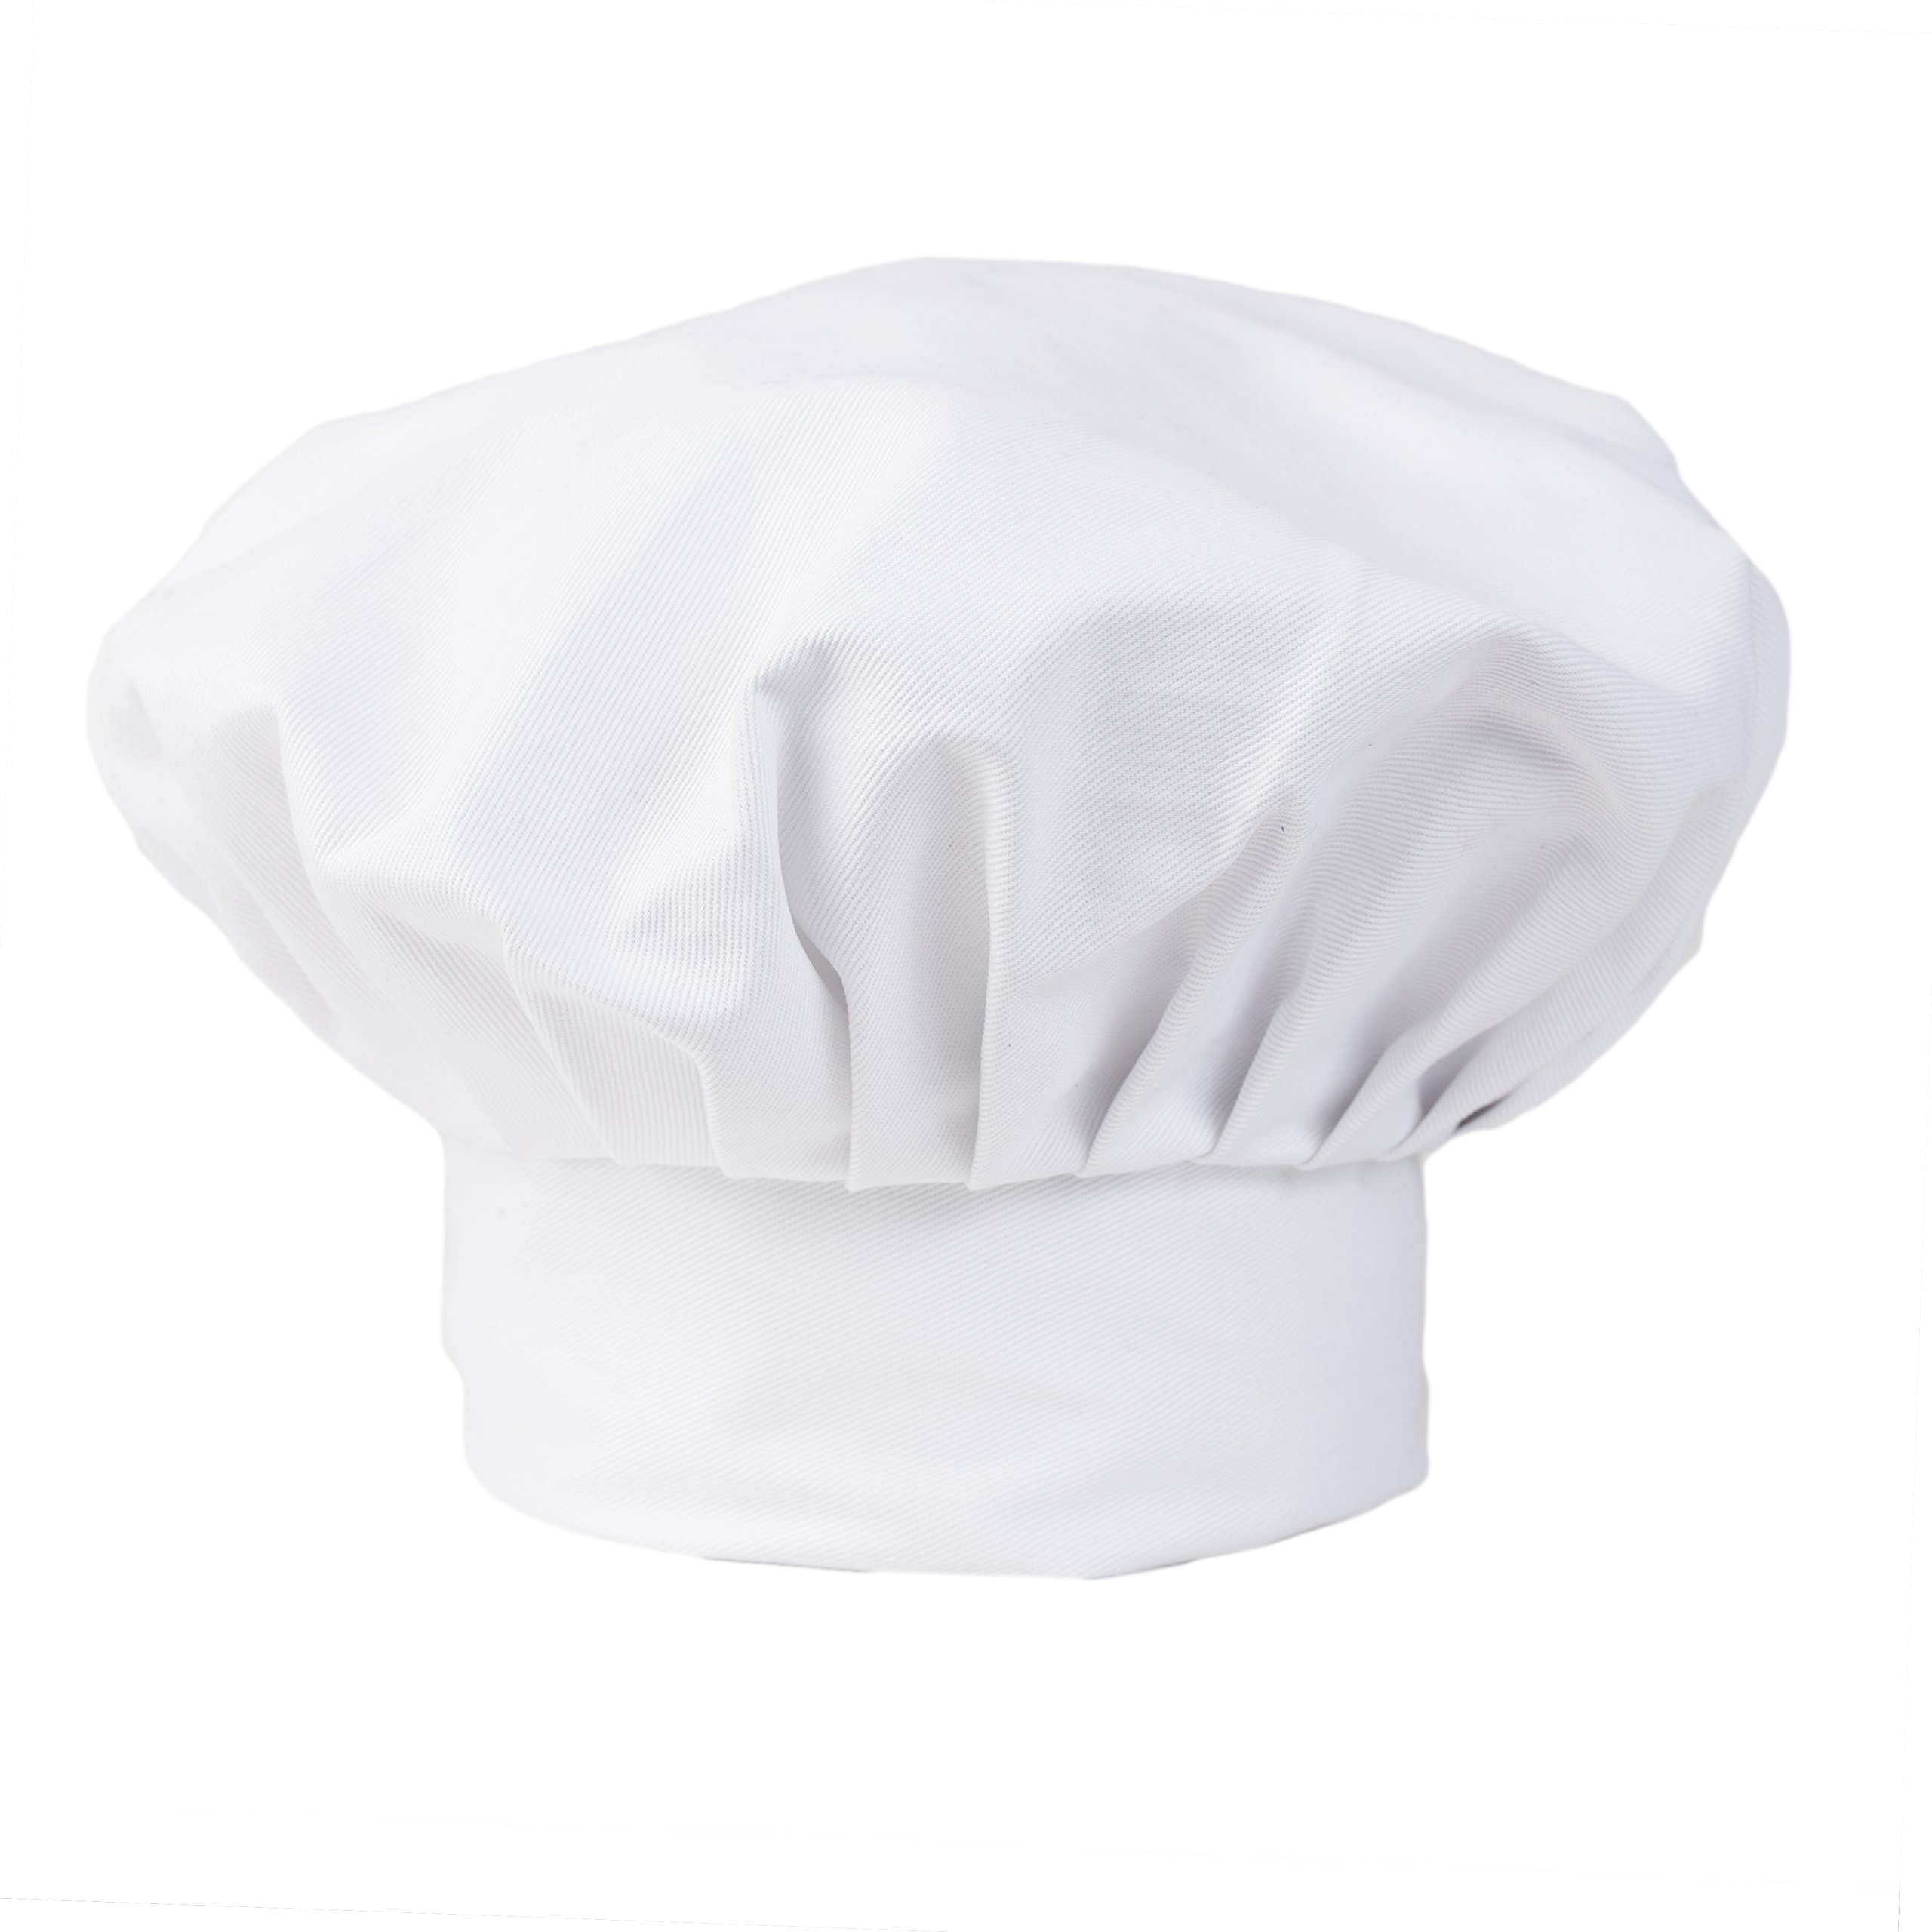 KNG White Chef Hat, 13 inch by KNG